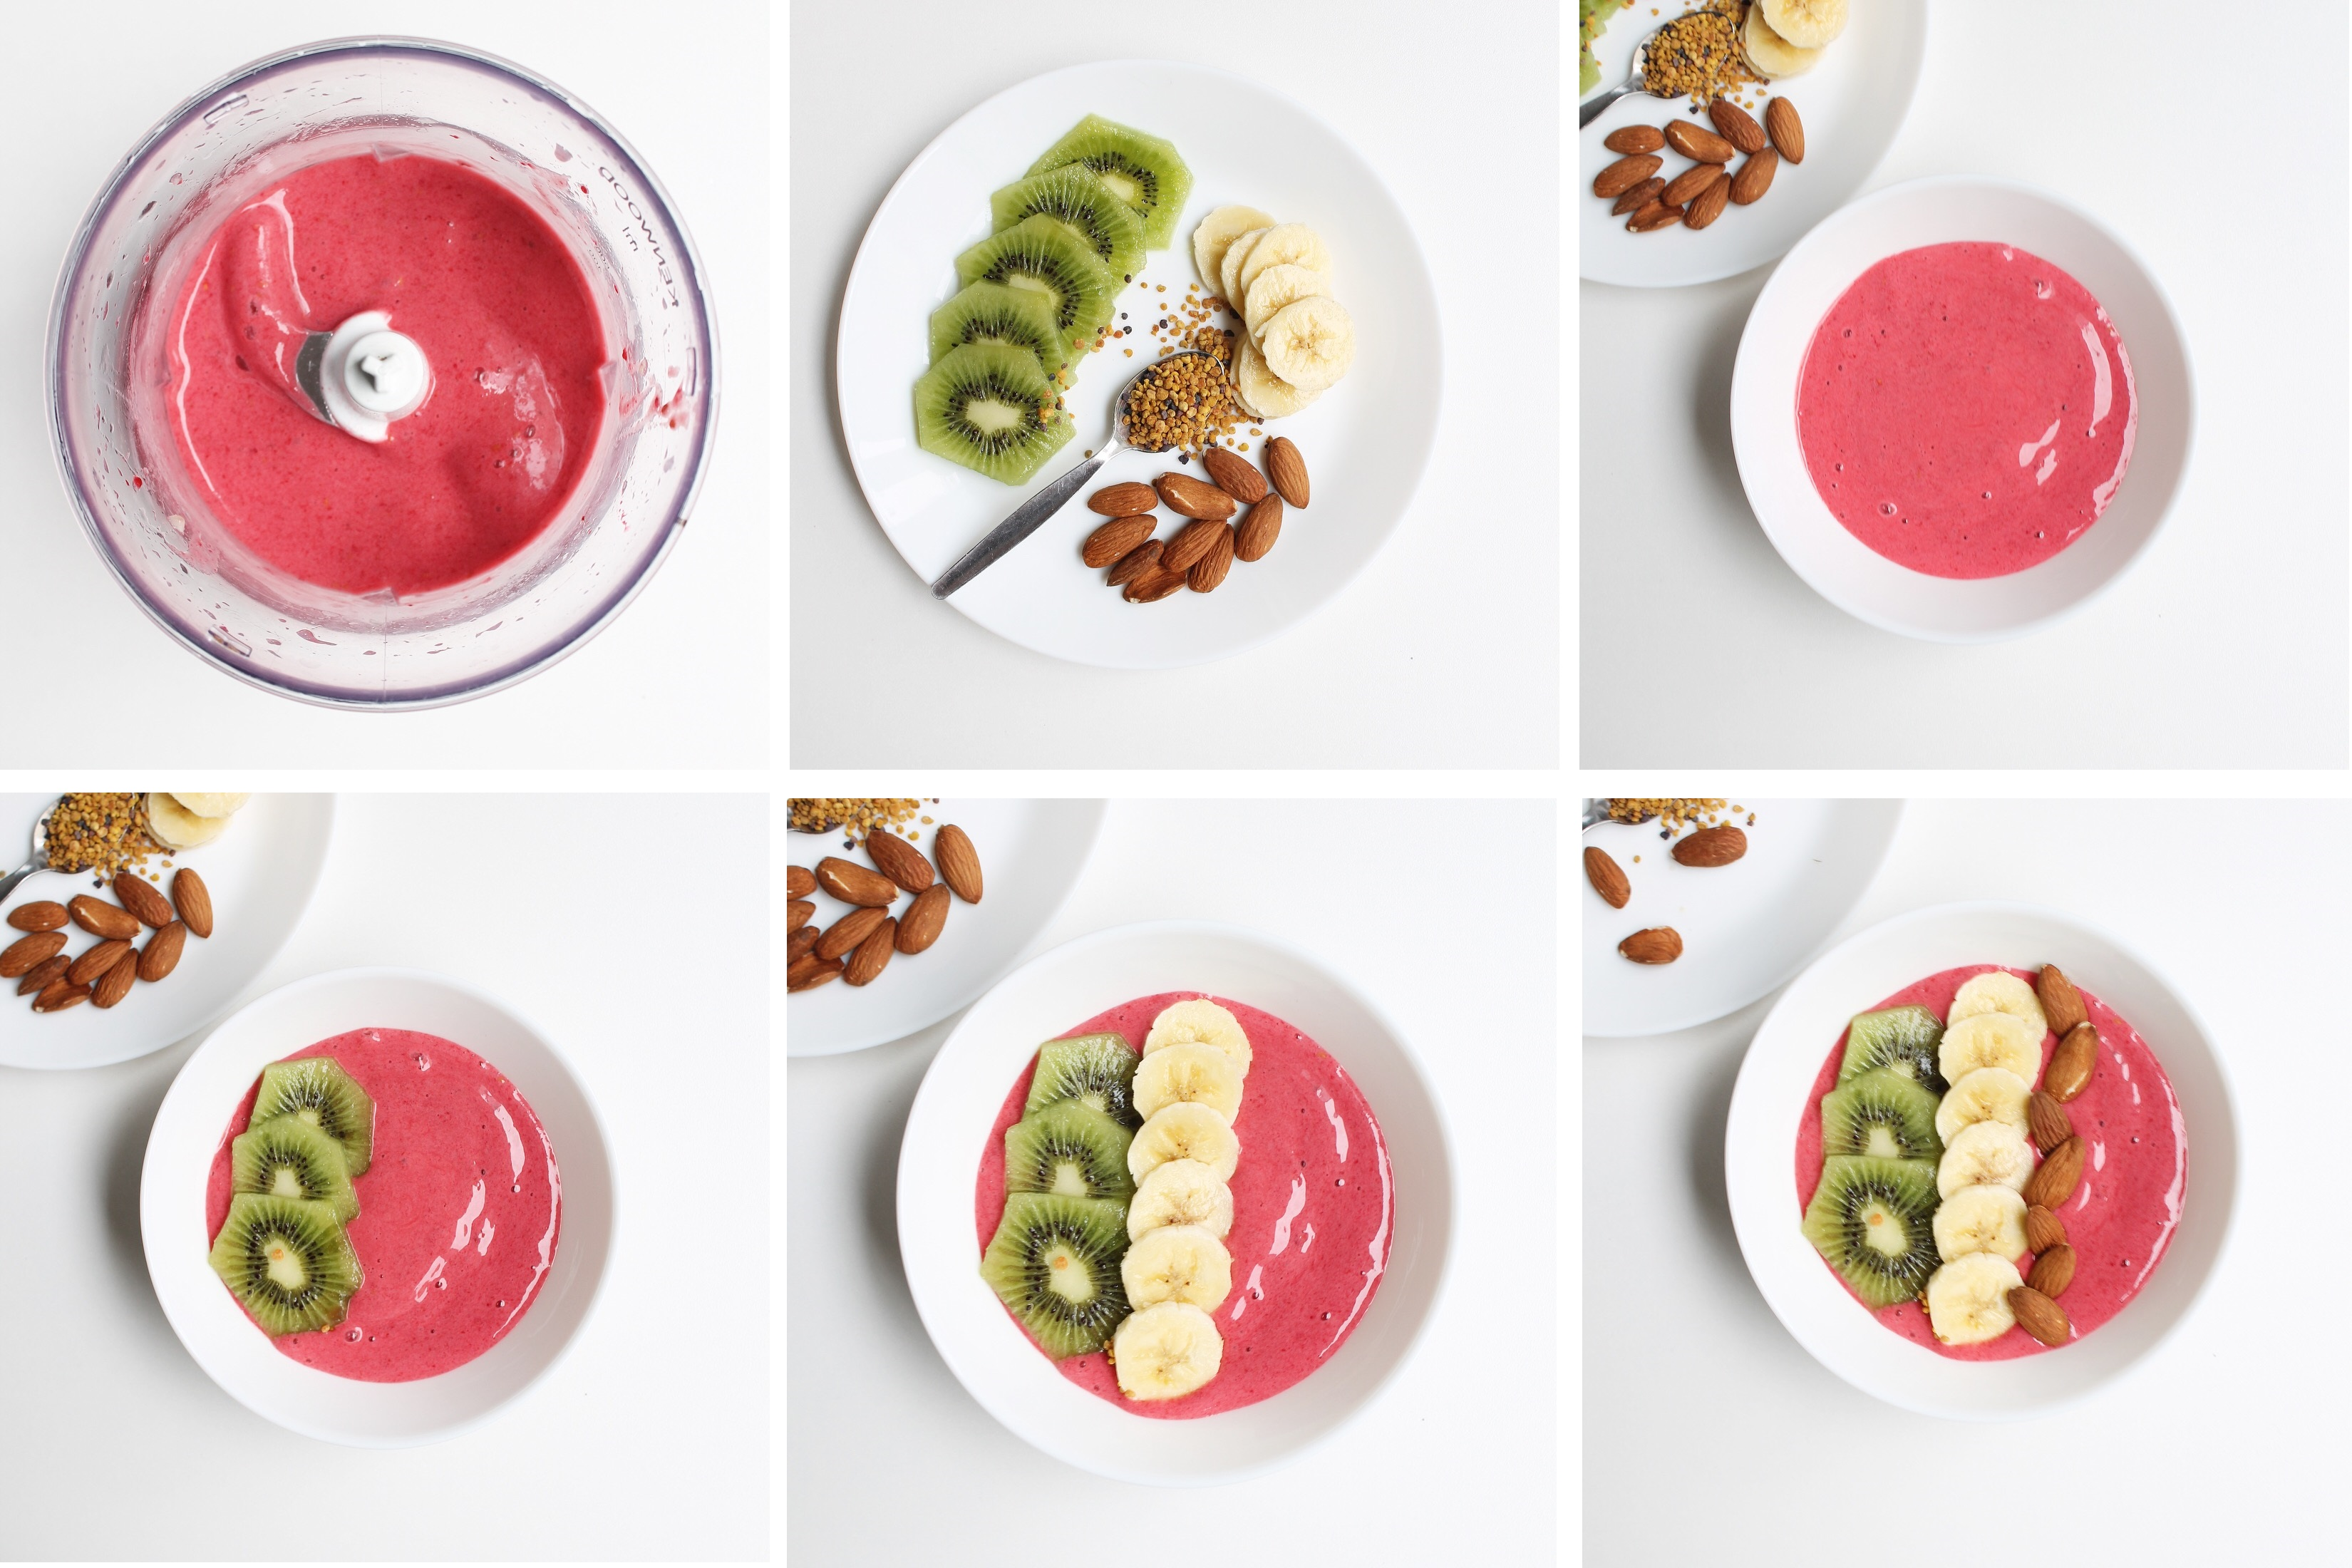 PINK SMOOTHIE BOWL recette facile